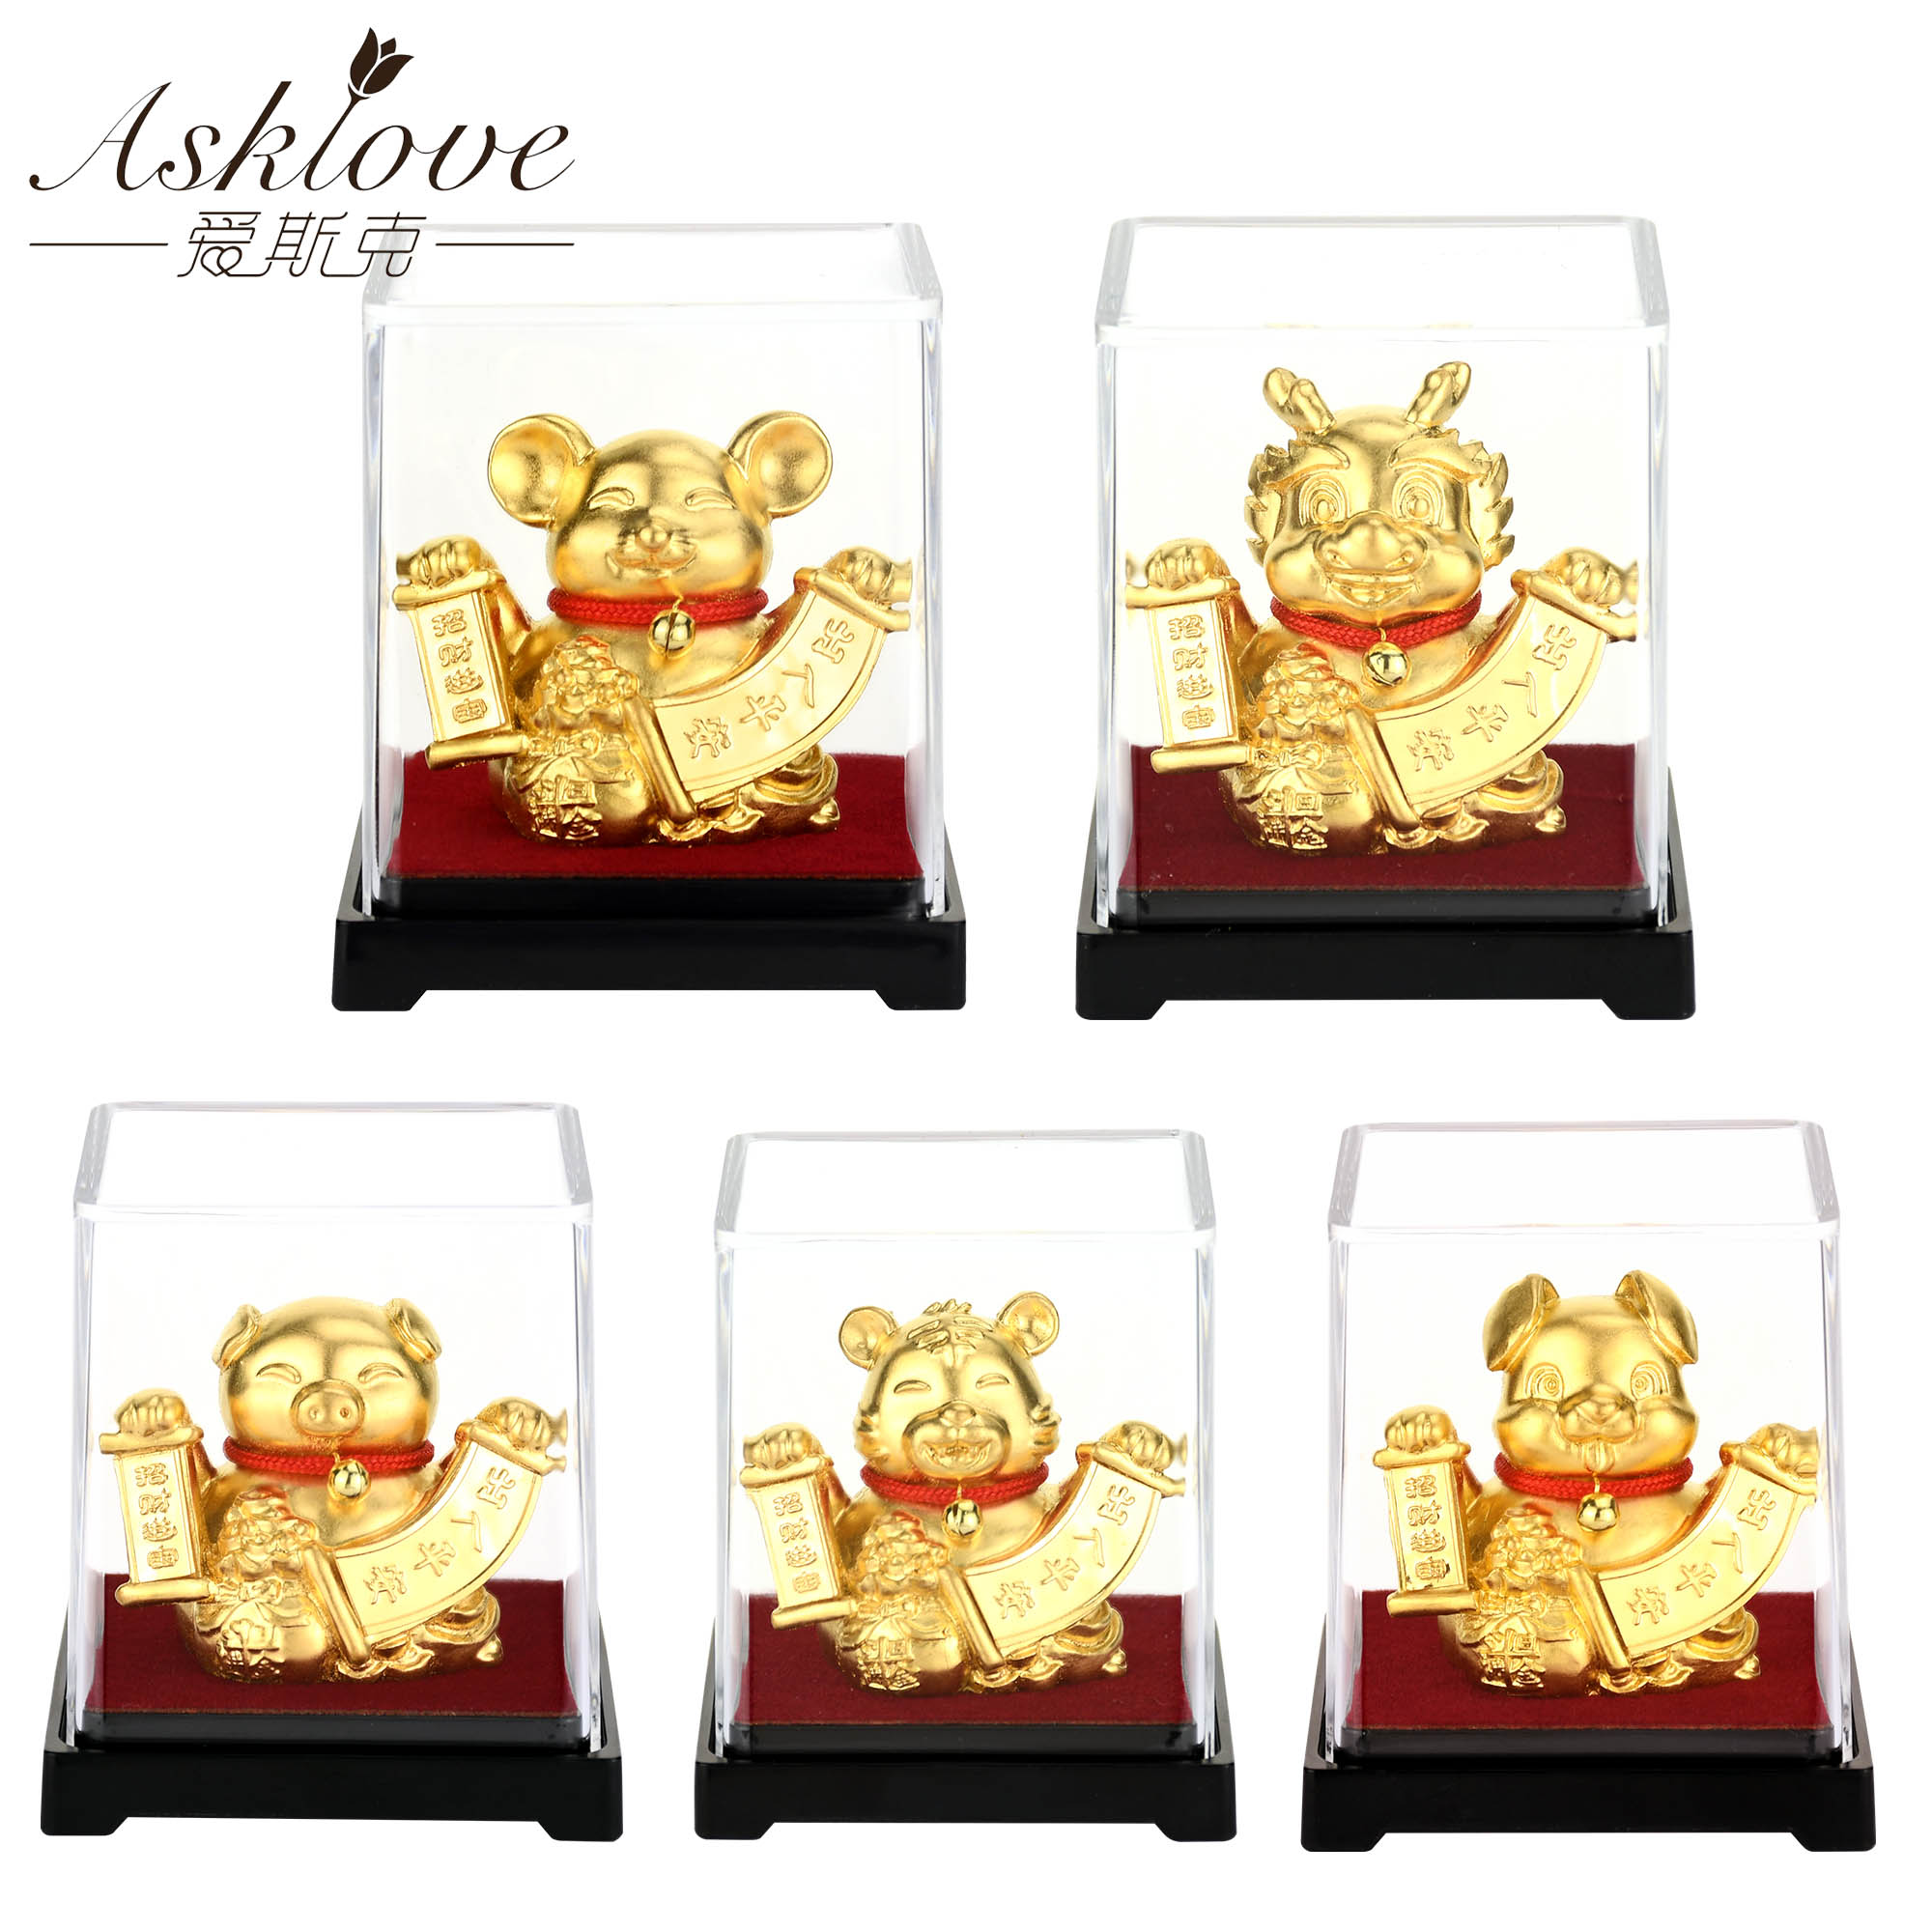 Chinese Zodiac Collect Wealth Ornaments 24k Gold Foil Fengshui decor Dragon/Rat/Pig/monkey Car Lucky crafts Home office decor